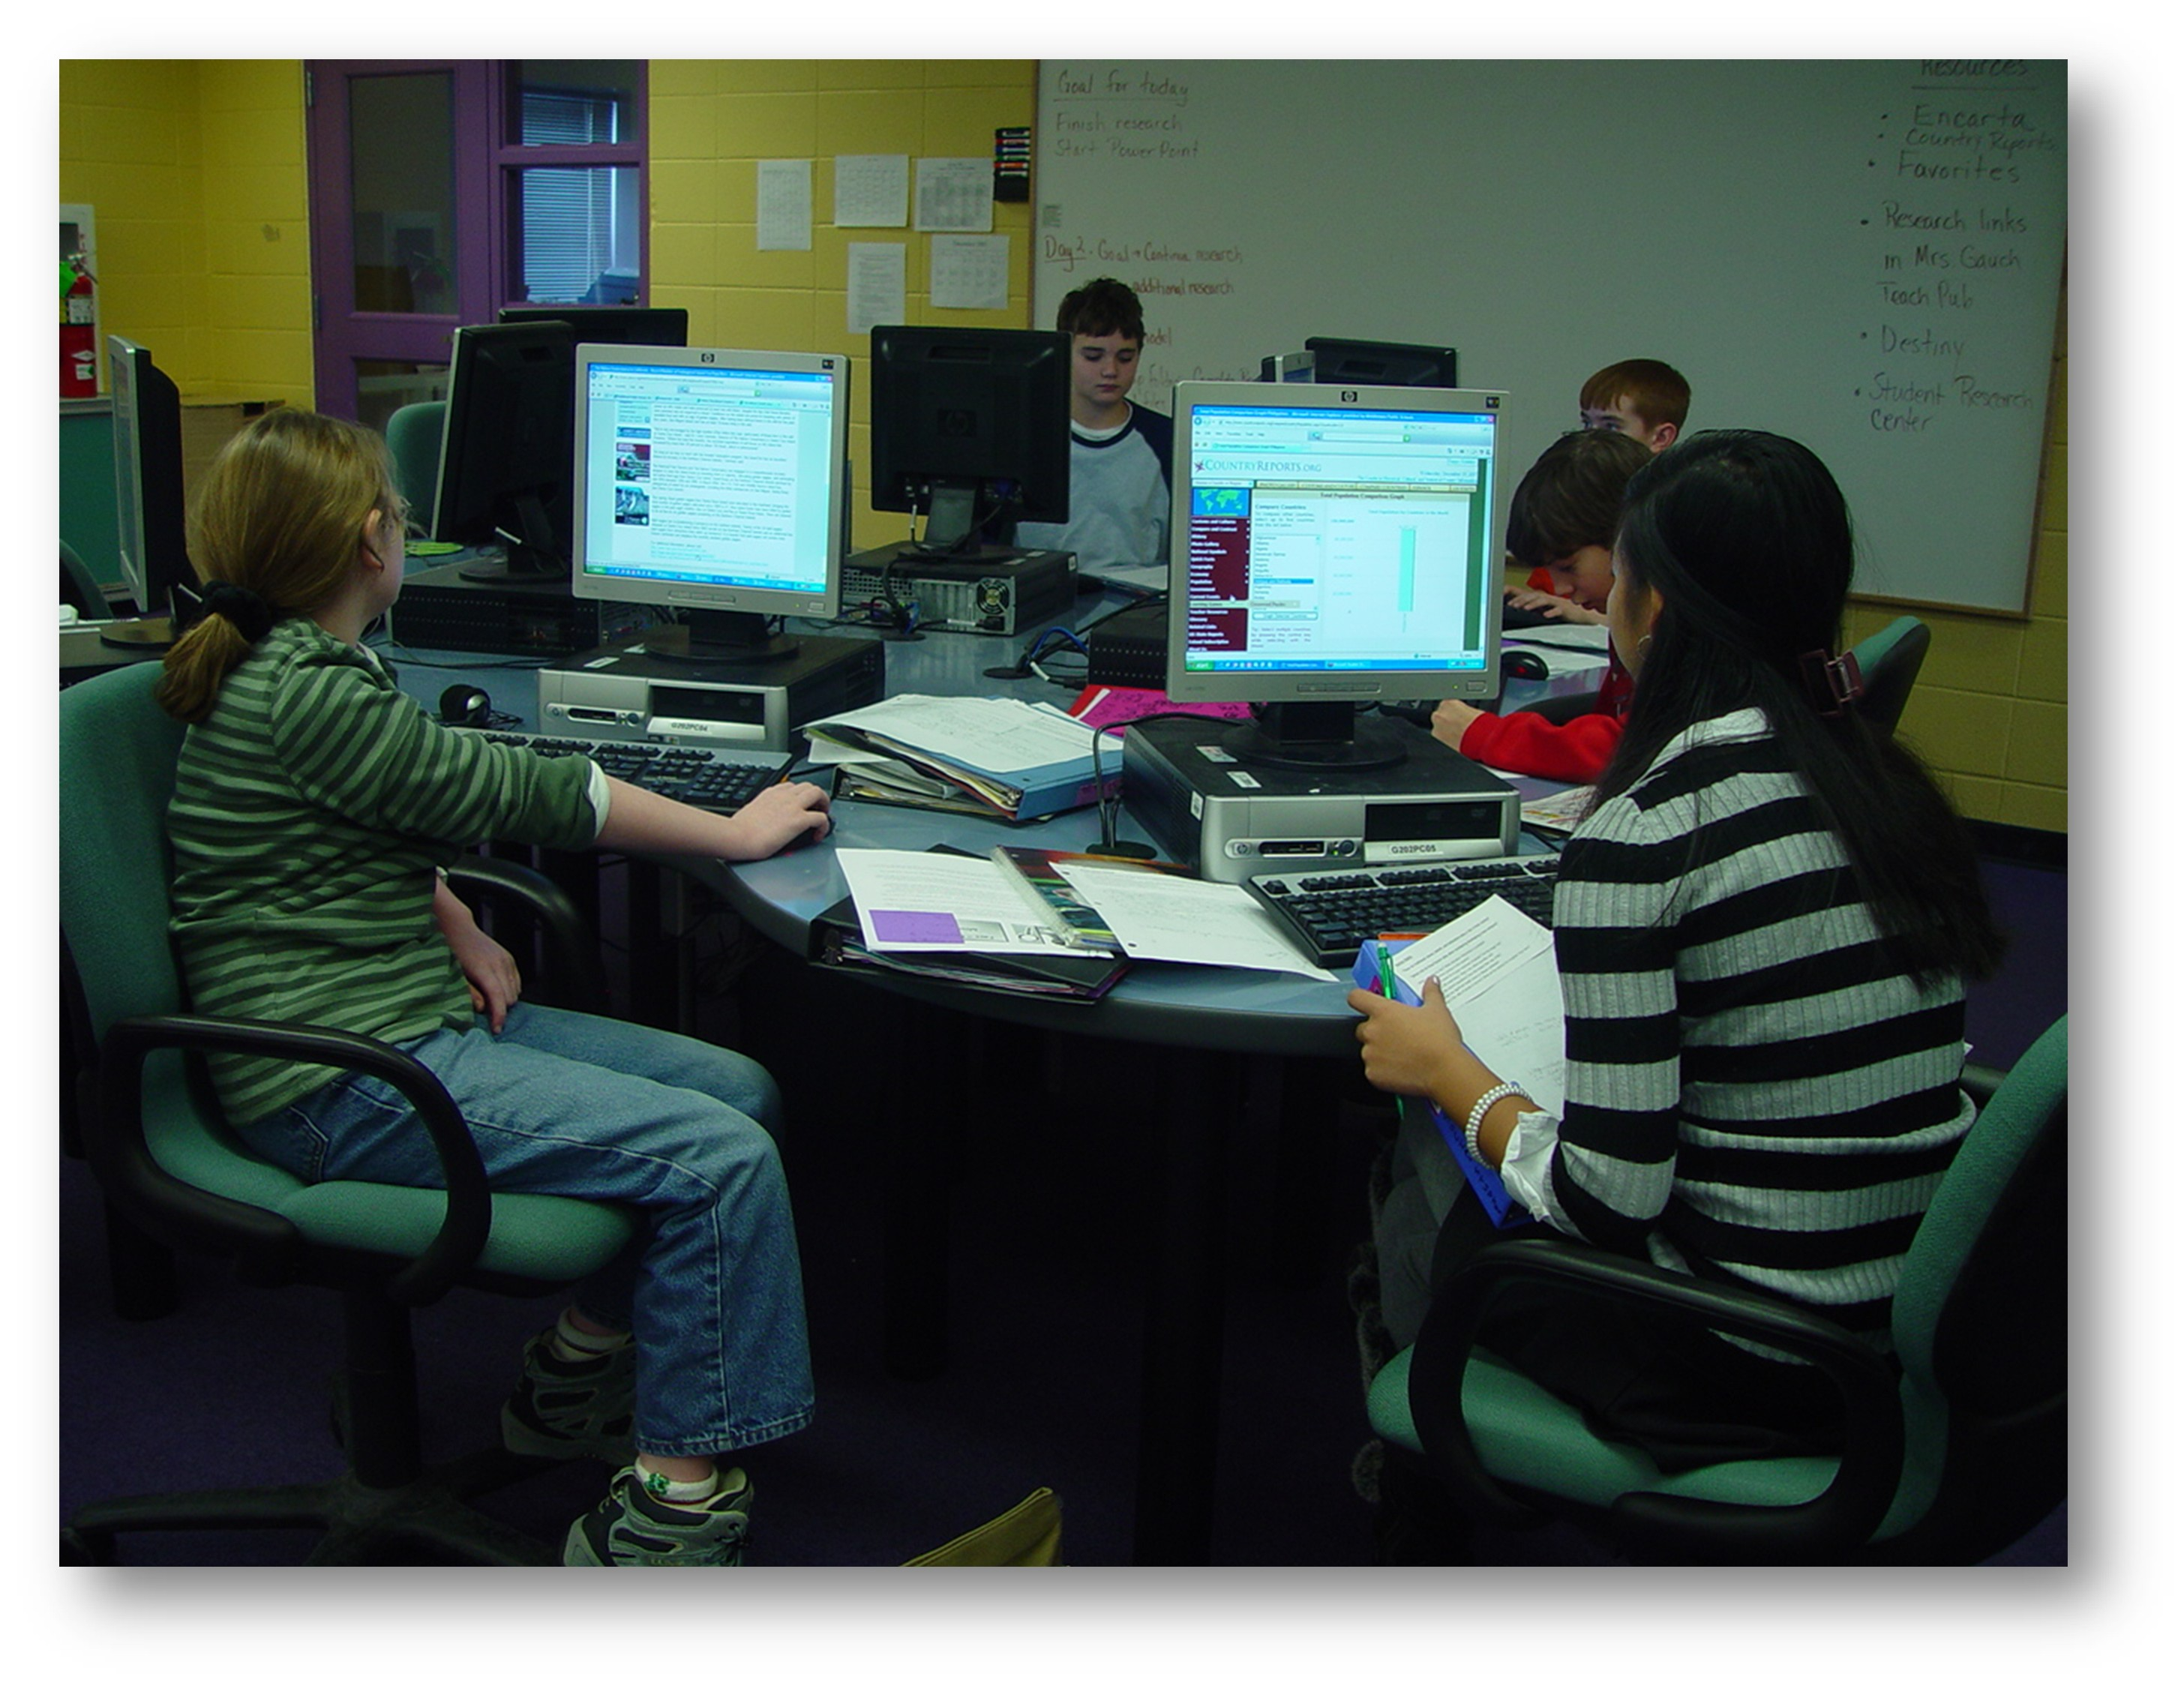 A photo of the computer lab.